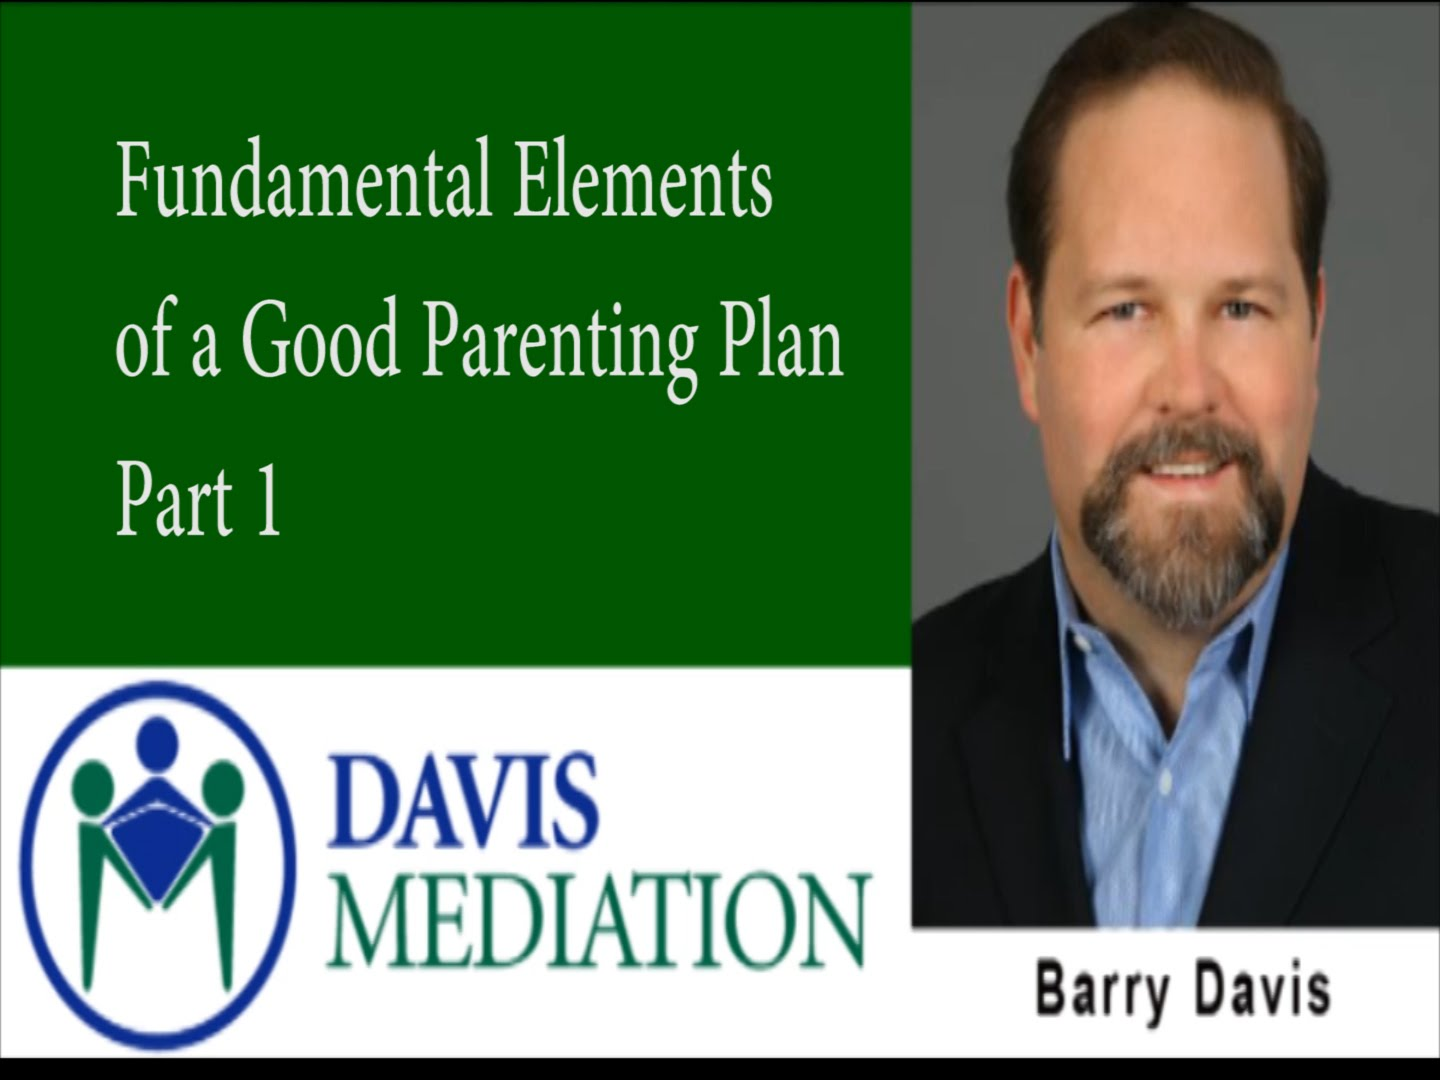 Fundamental-Elements-of-a-Good-Parenting-Plan-Pt.-1